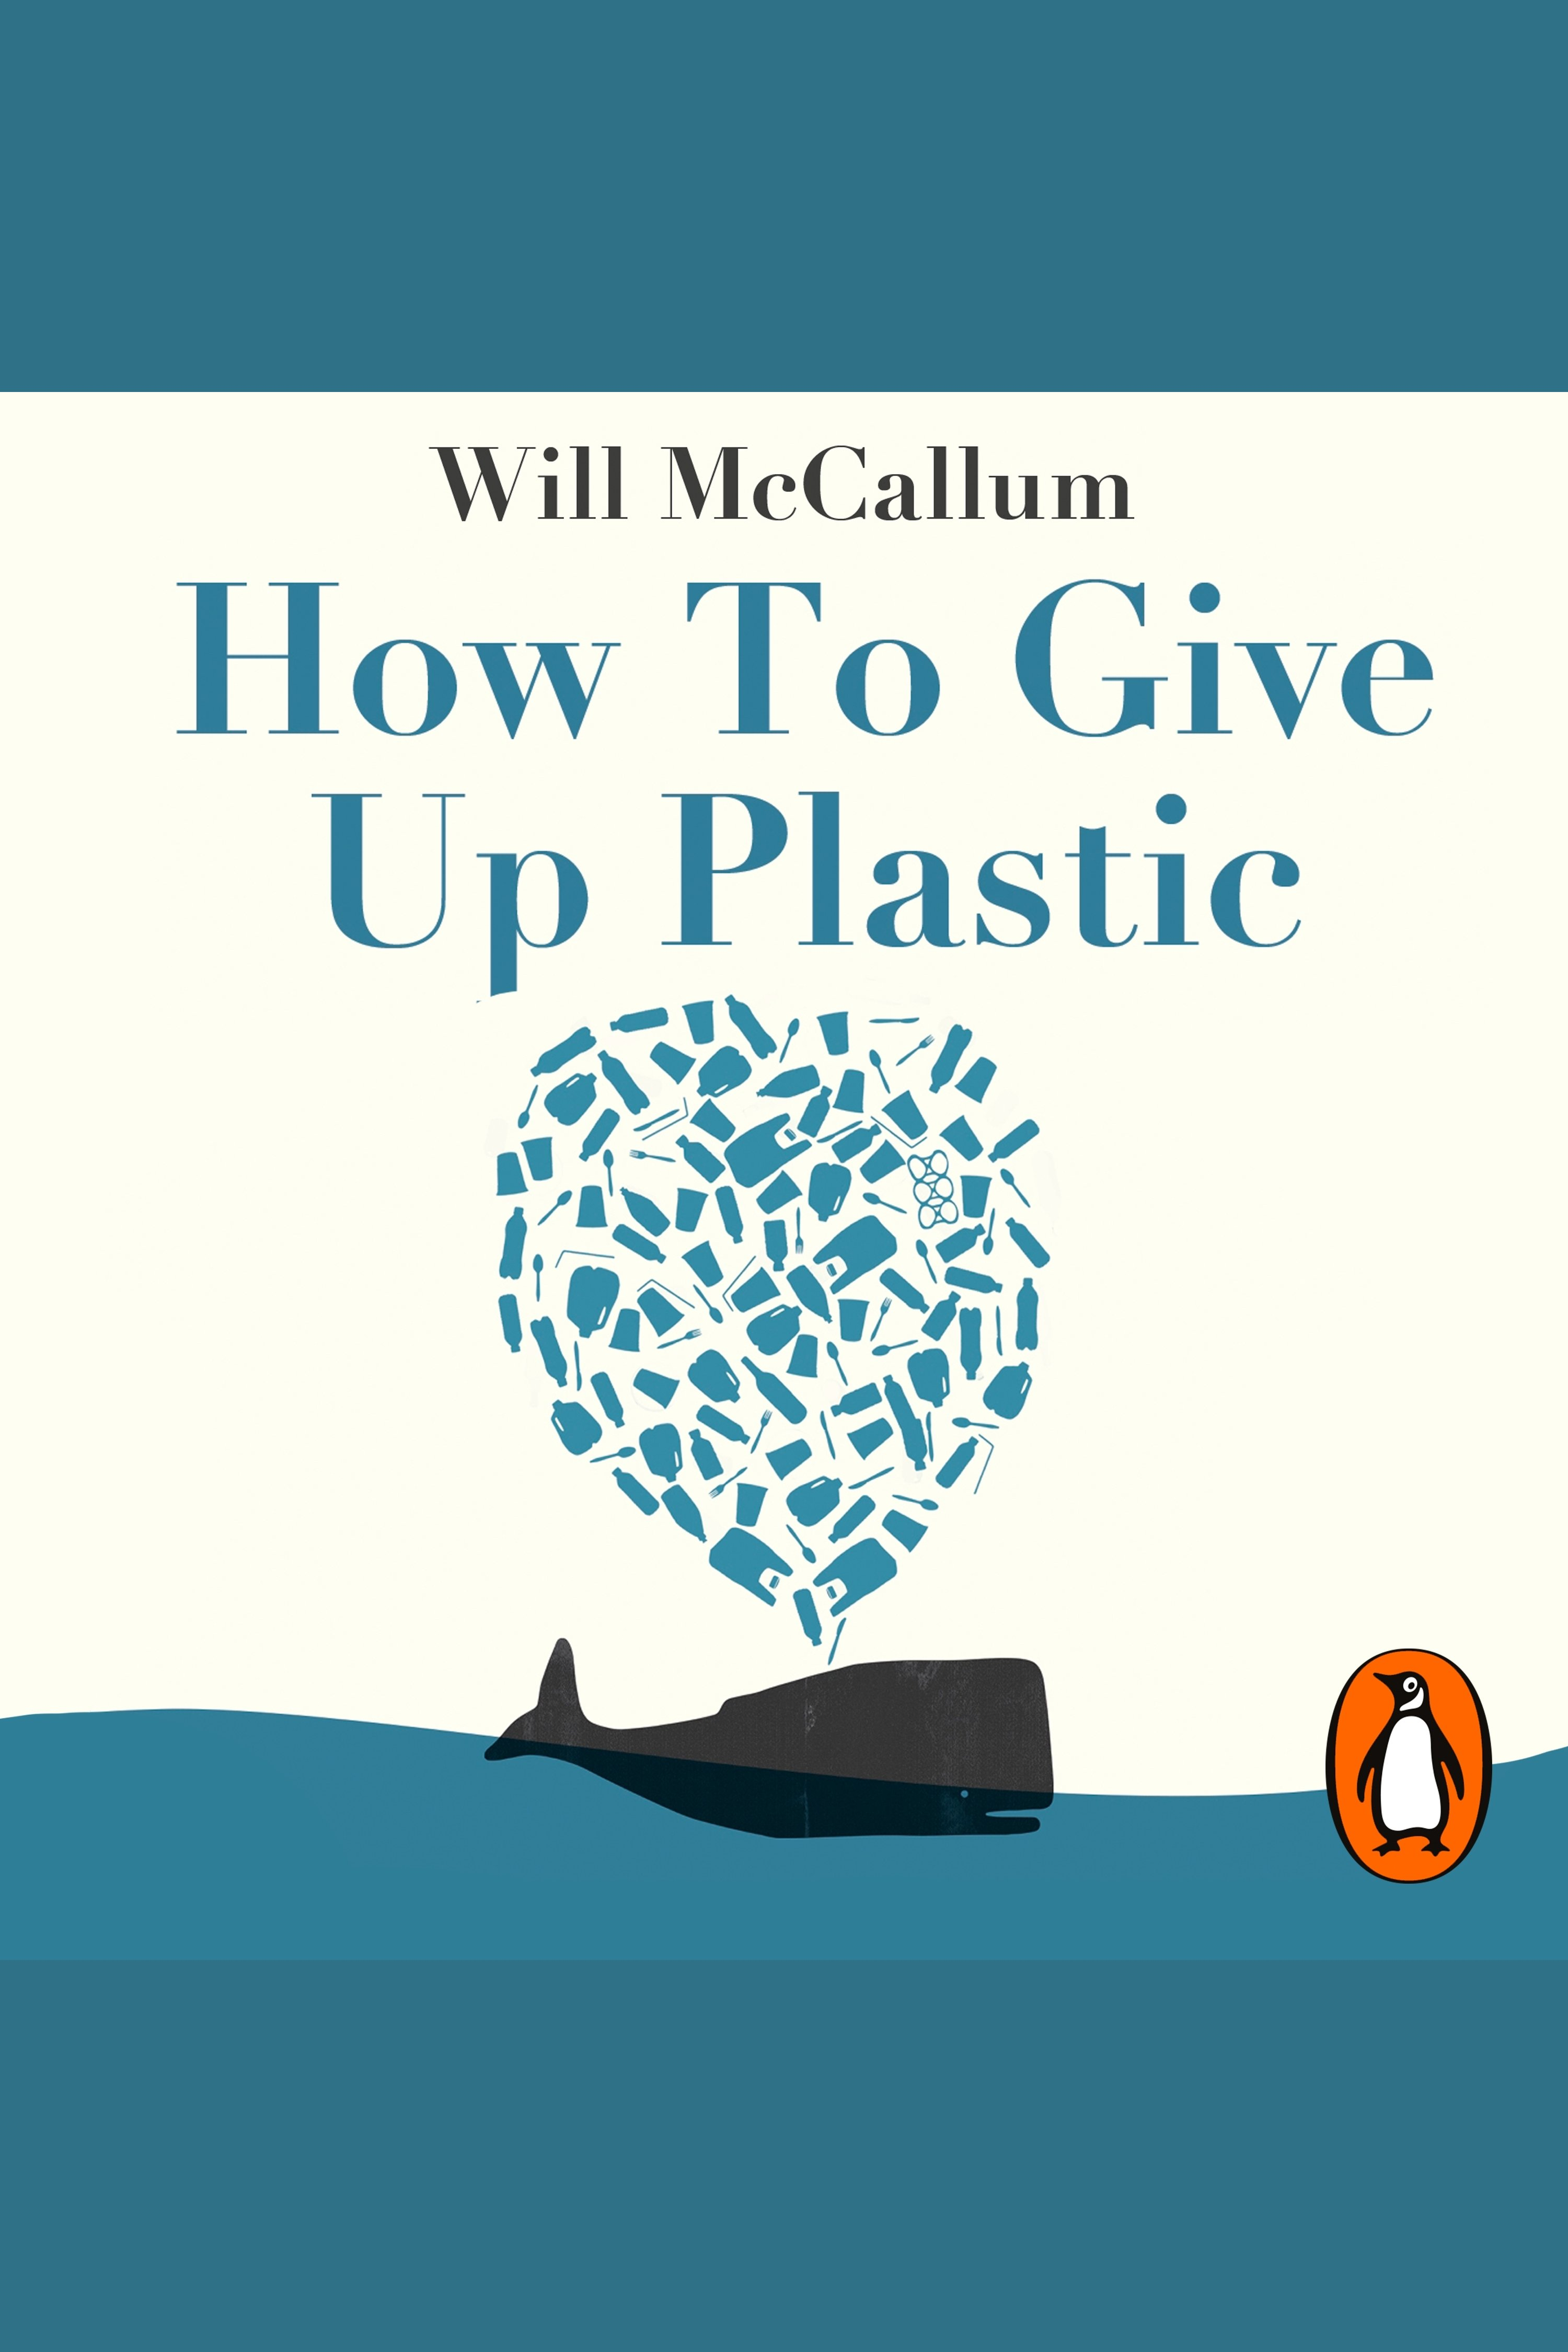 How to Give Up Plastic A Guide to Changing the World, One Plastic Bottle at a Time